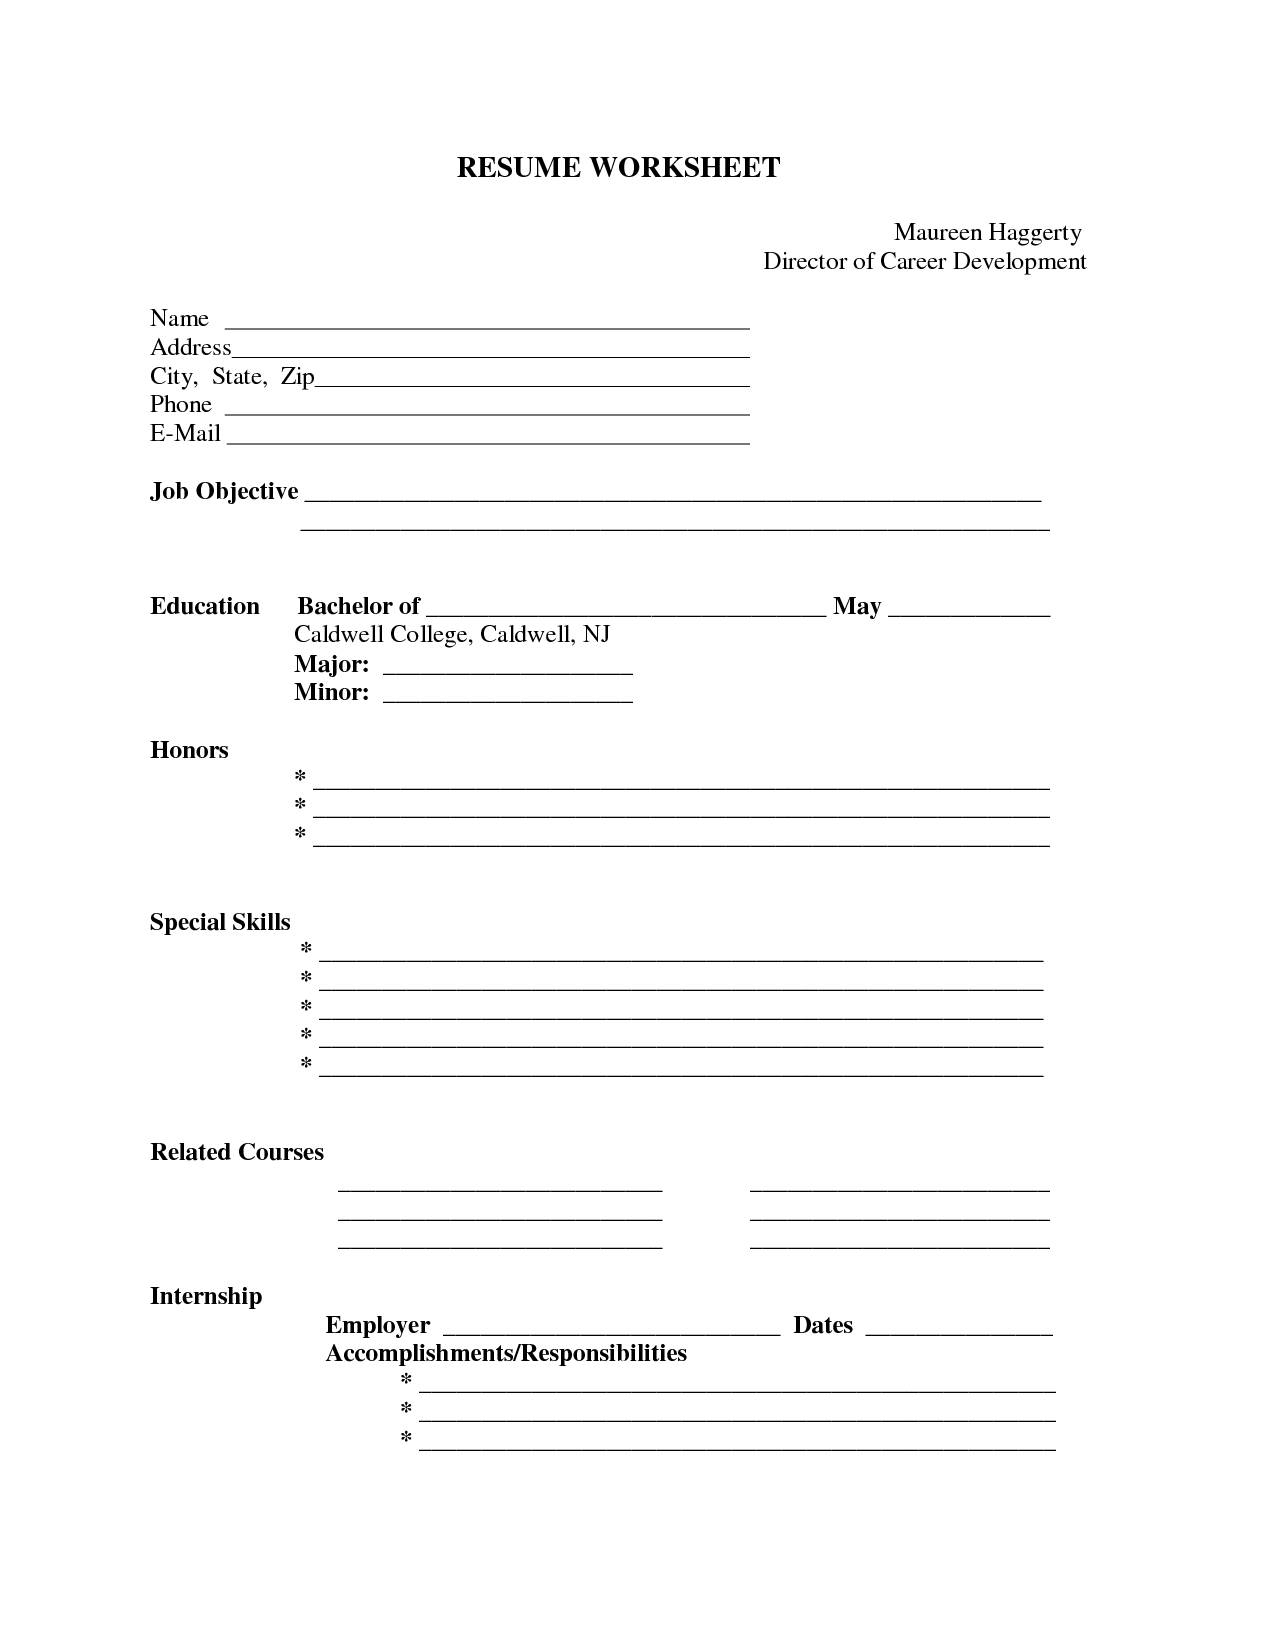 Blank Resume Form Worksheet Free Printable Resume Format | Resume - Free Blank Resume Forms Printable